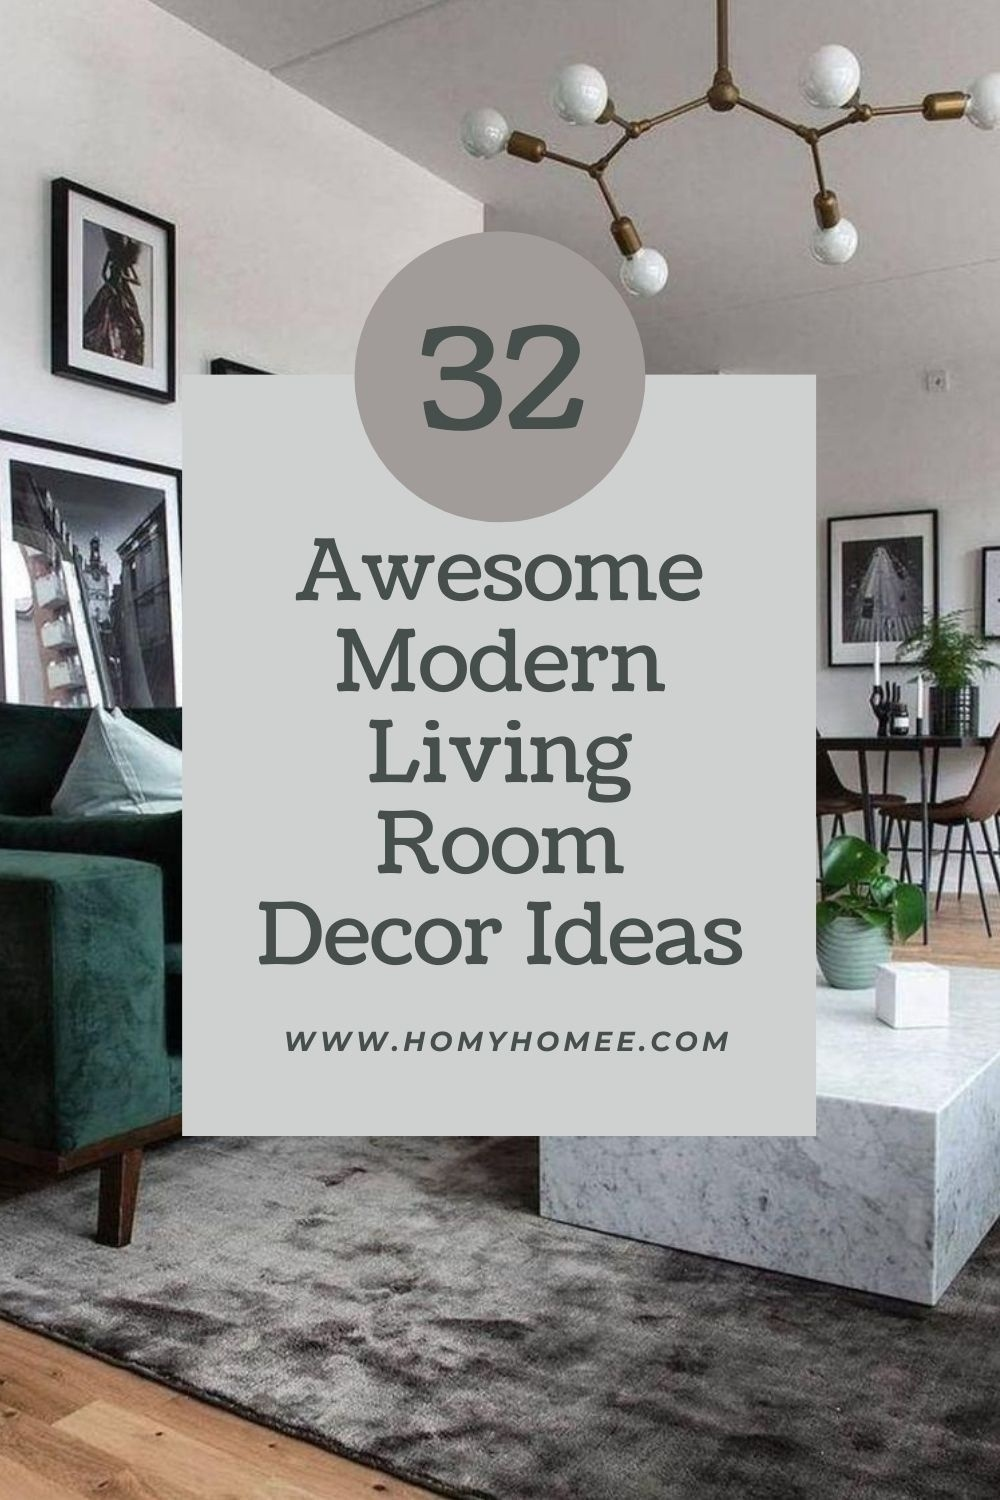 32 Awesome Modern Living Room Decor Ideas